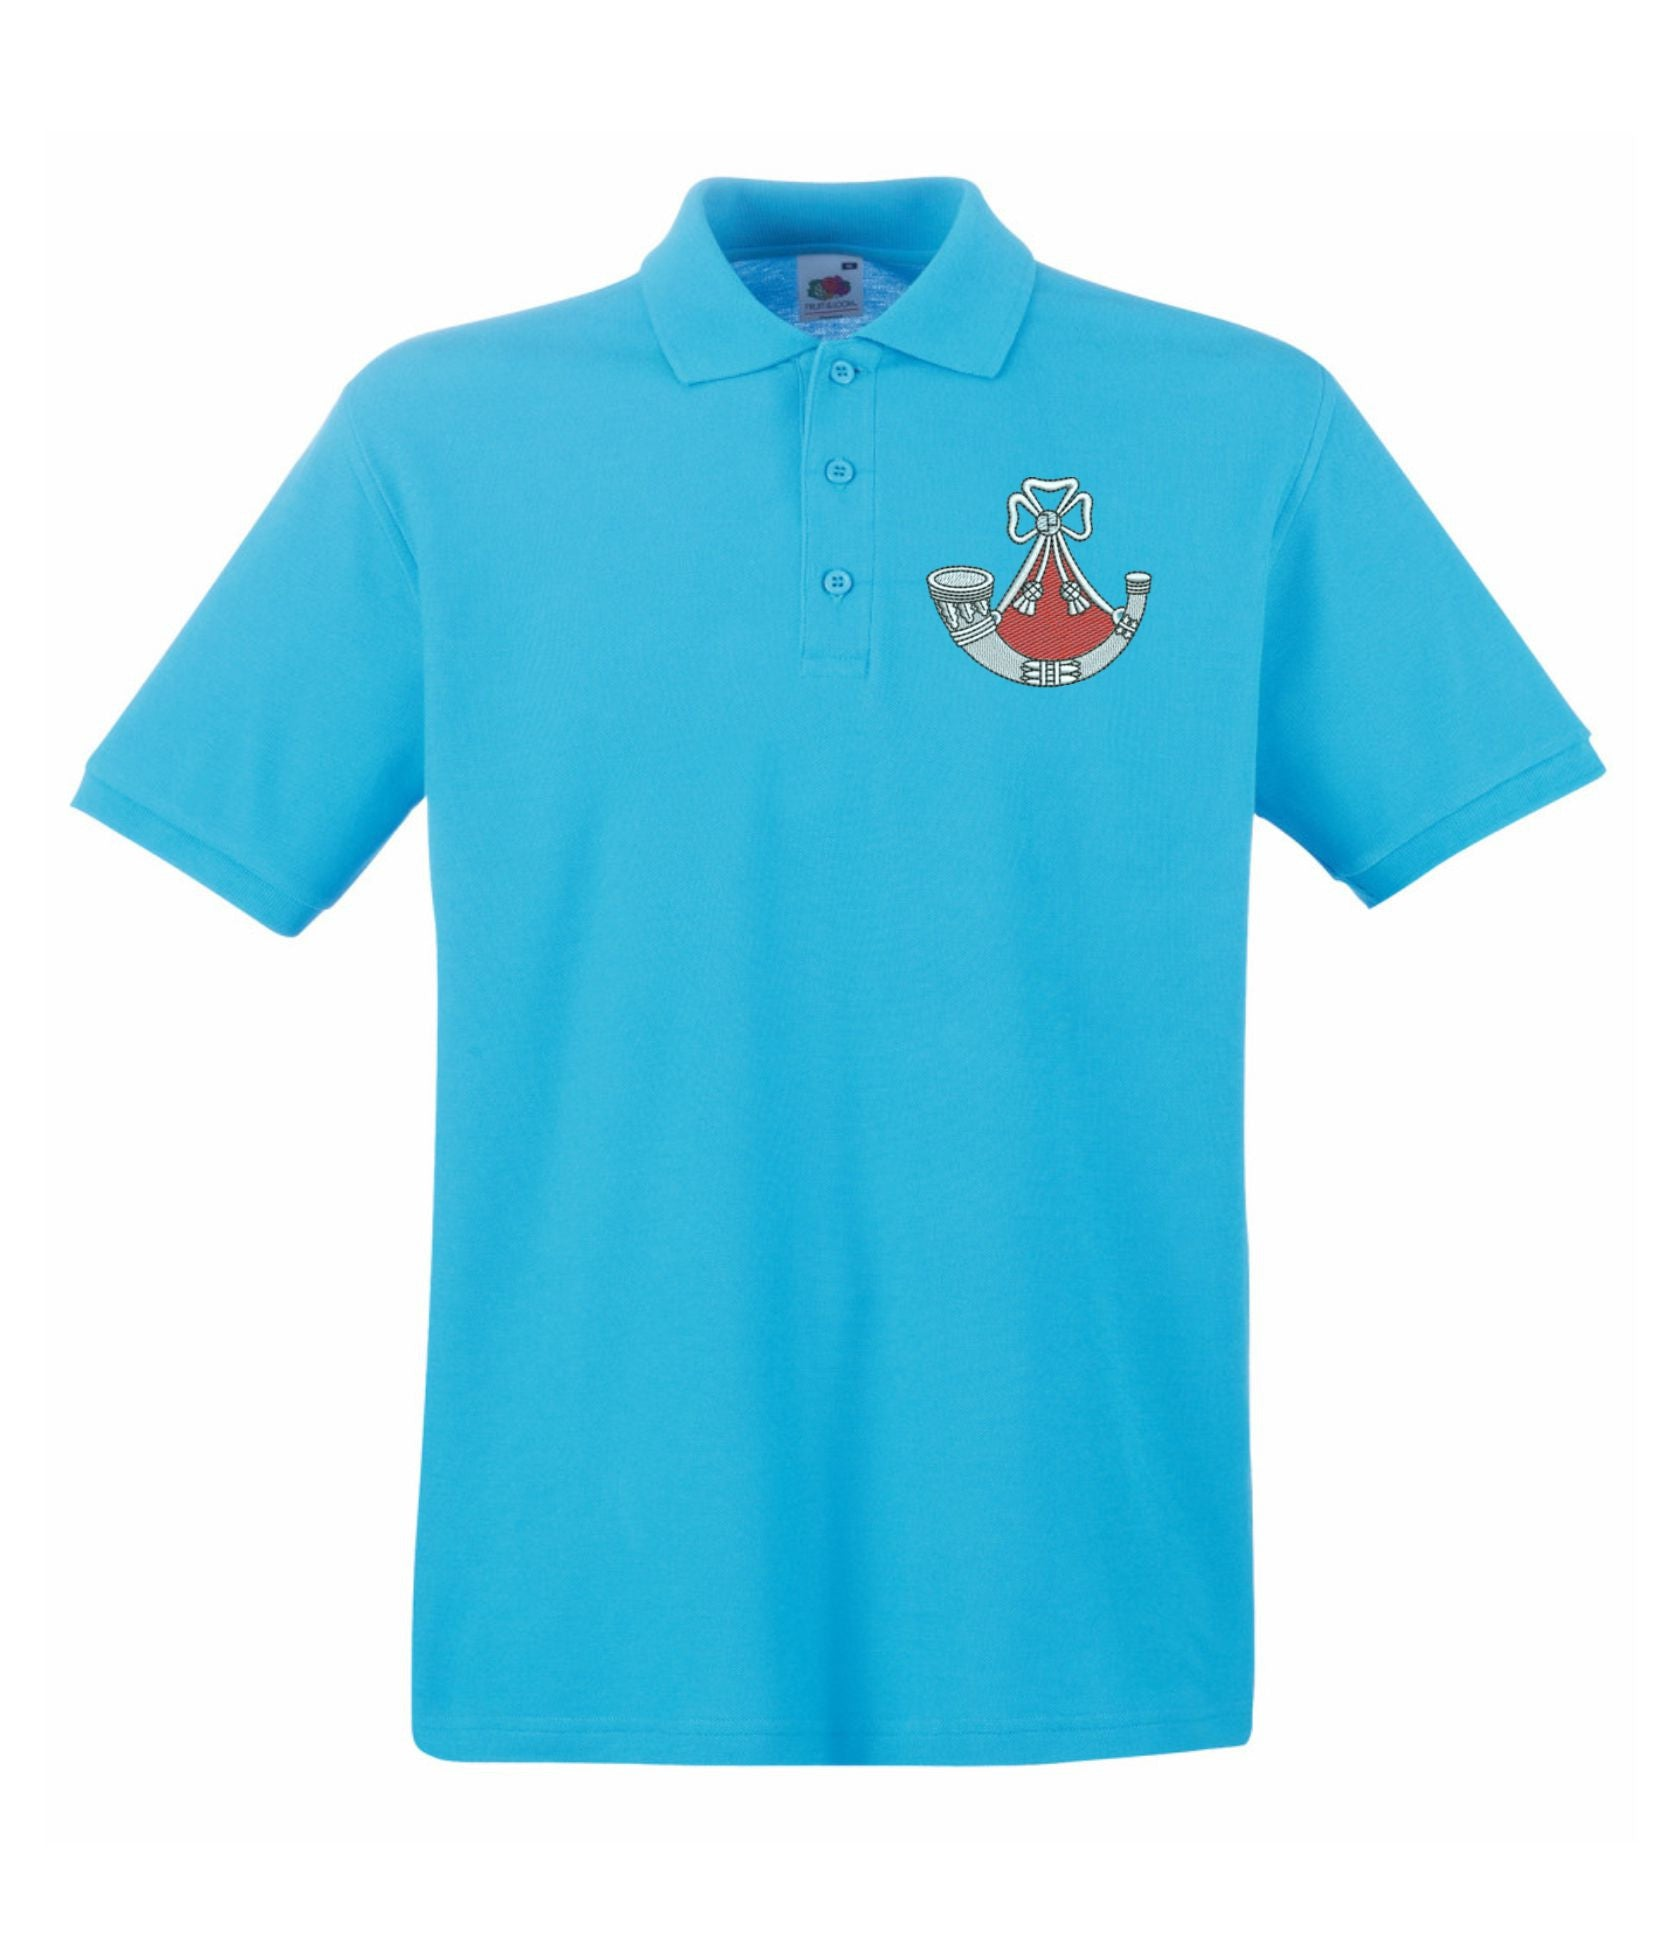 Light Infantry Regiment Polo Shirt